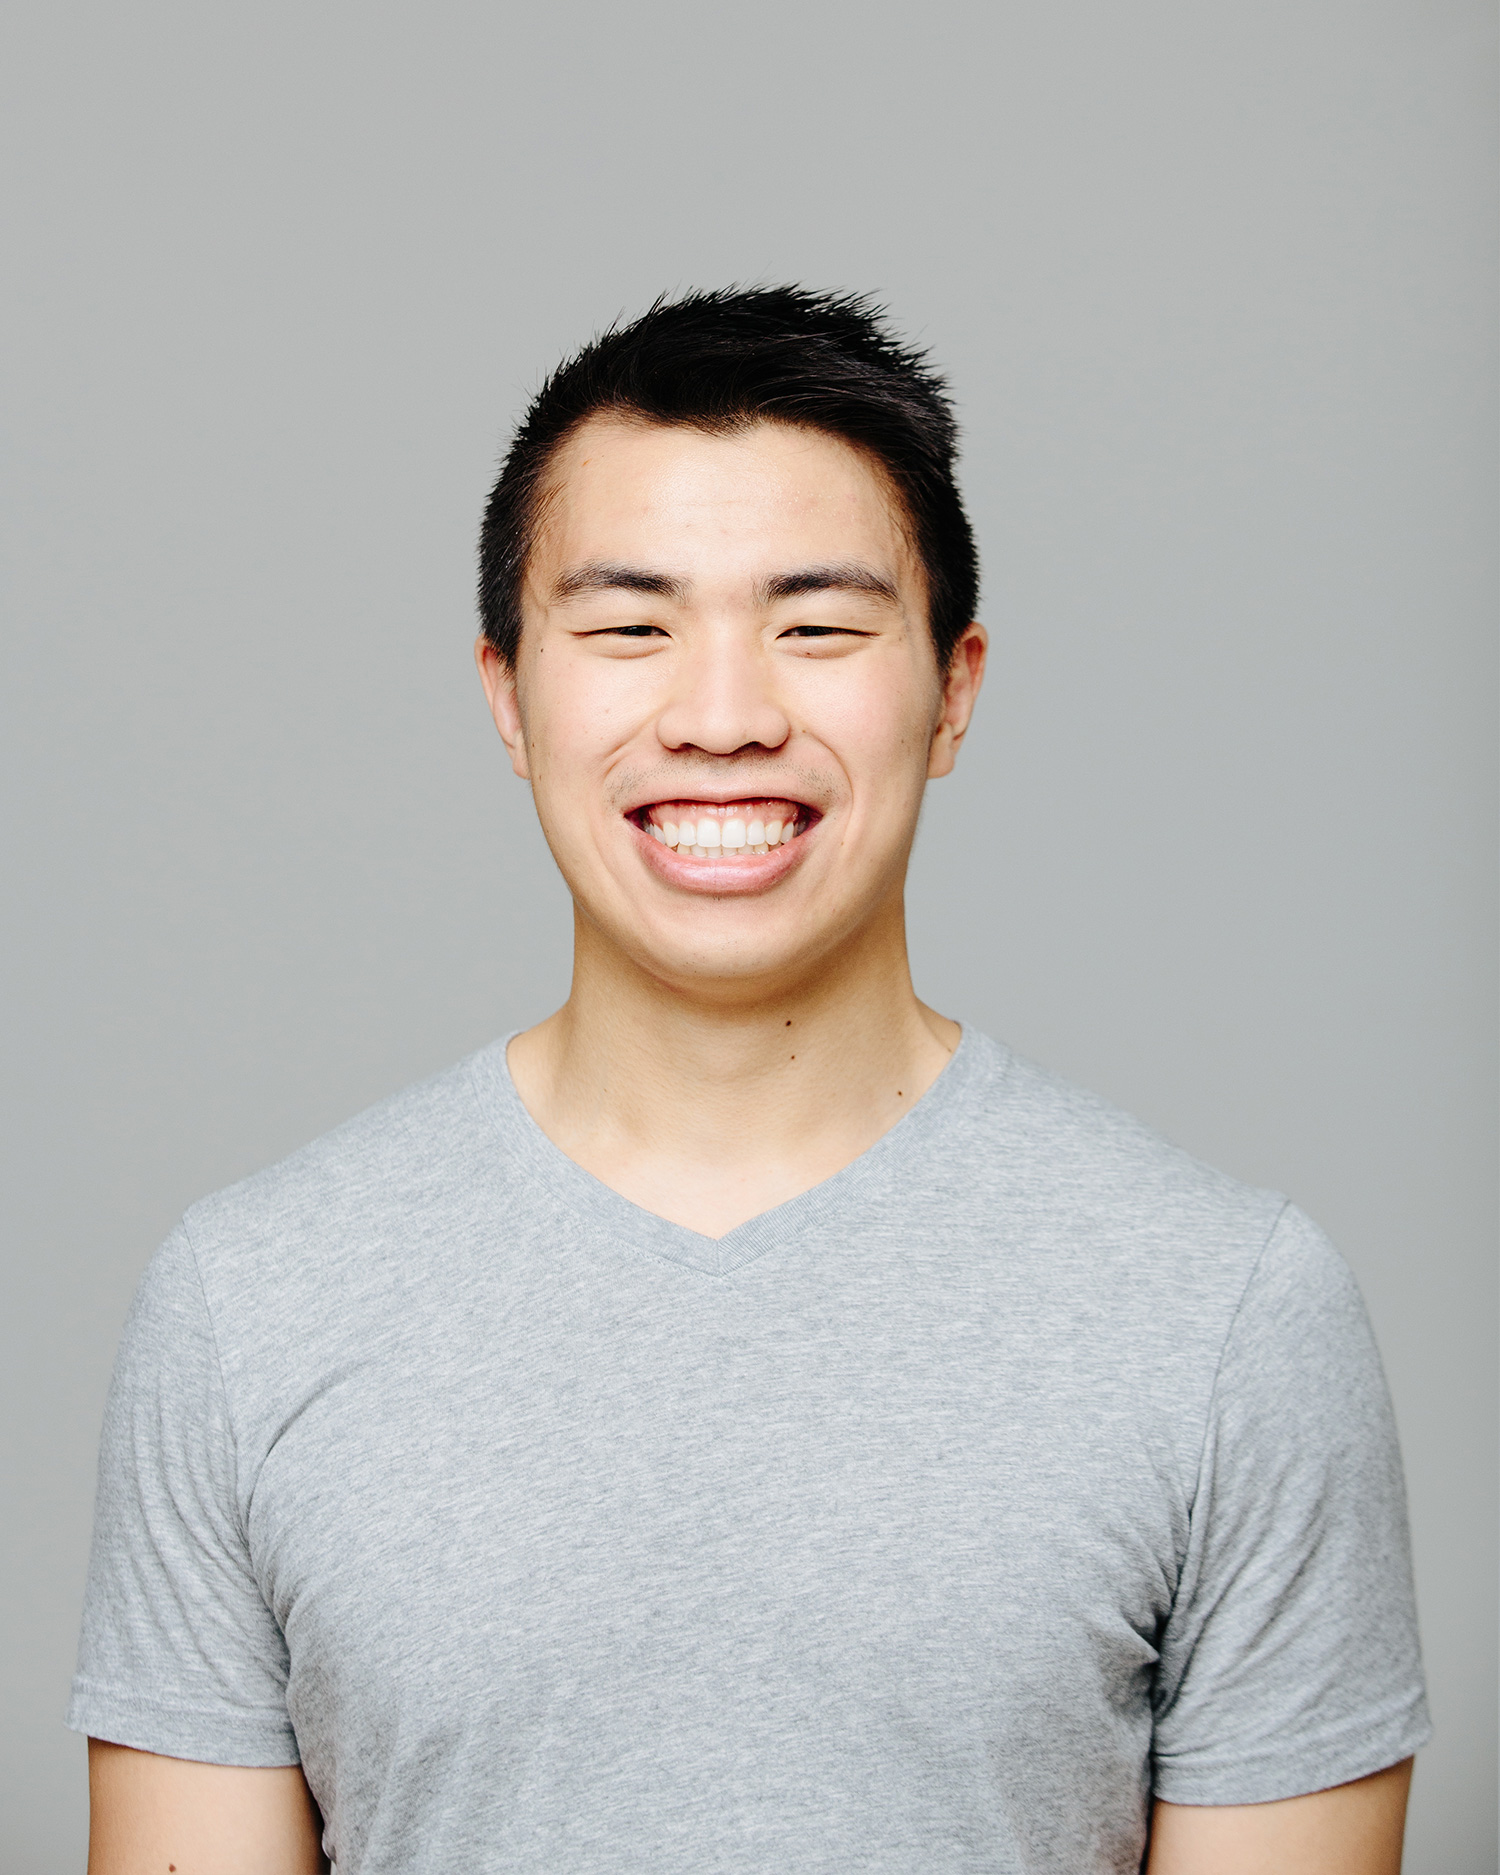 First Name Last Name - We do have one Asian dude on our team. This is not him. And we have two white dudes, neither of which are pictured on this page…in case you didn't realize that already.